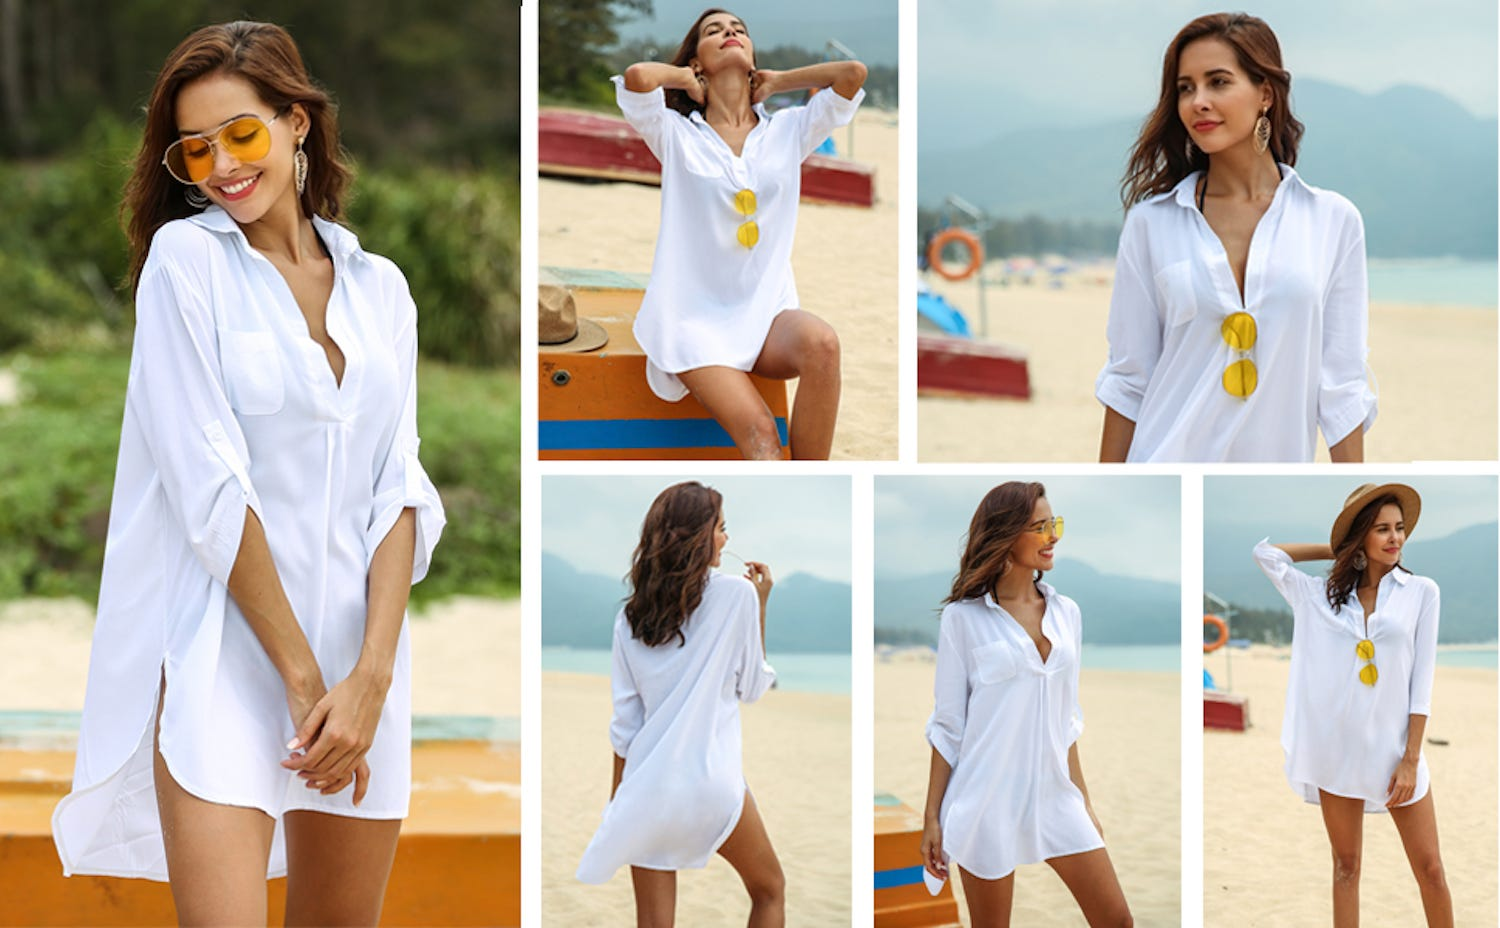 Photo montage of a woman wearing a white long-sleeved beach coverup